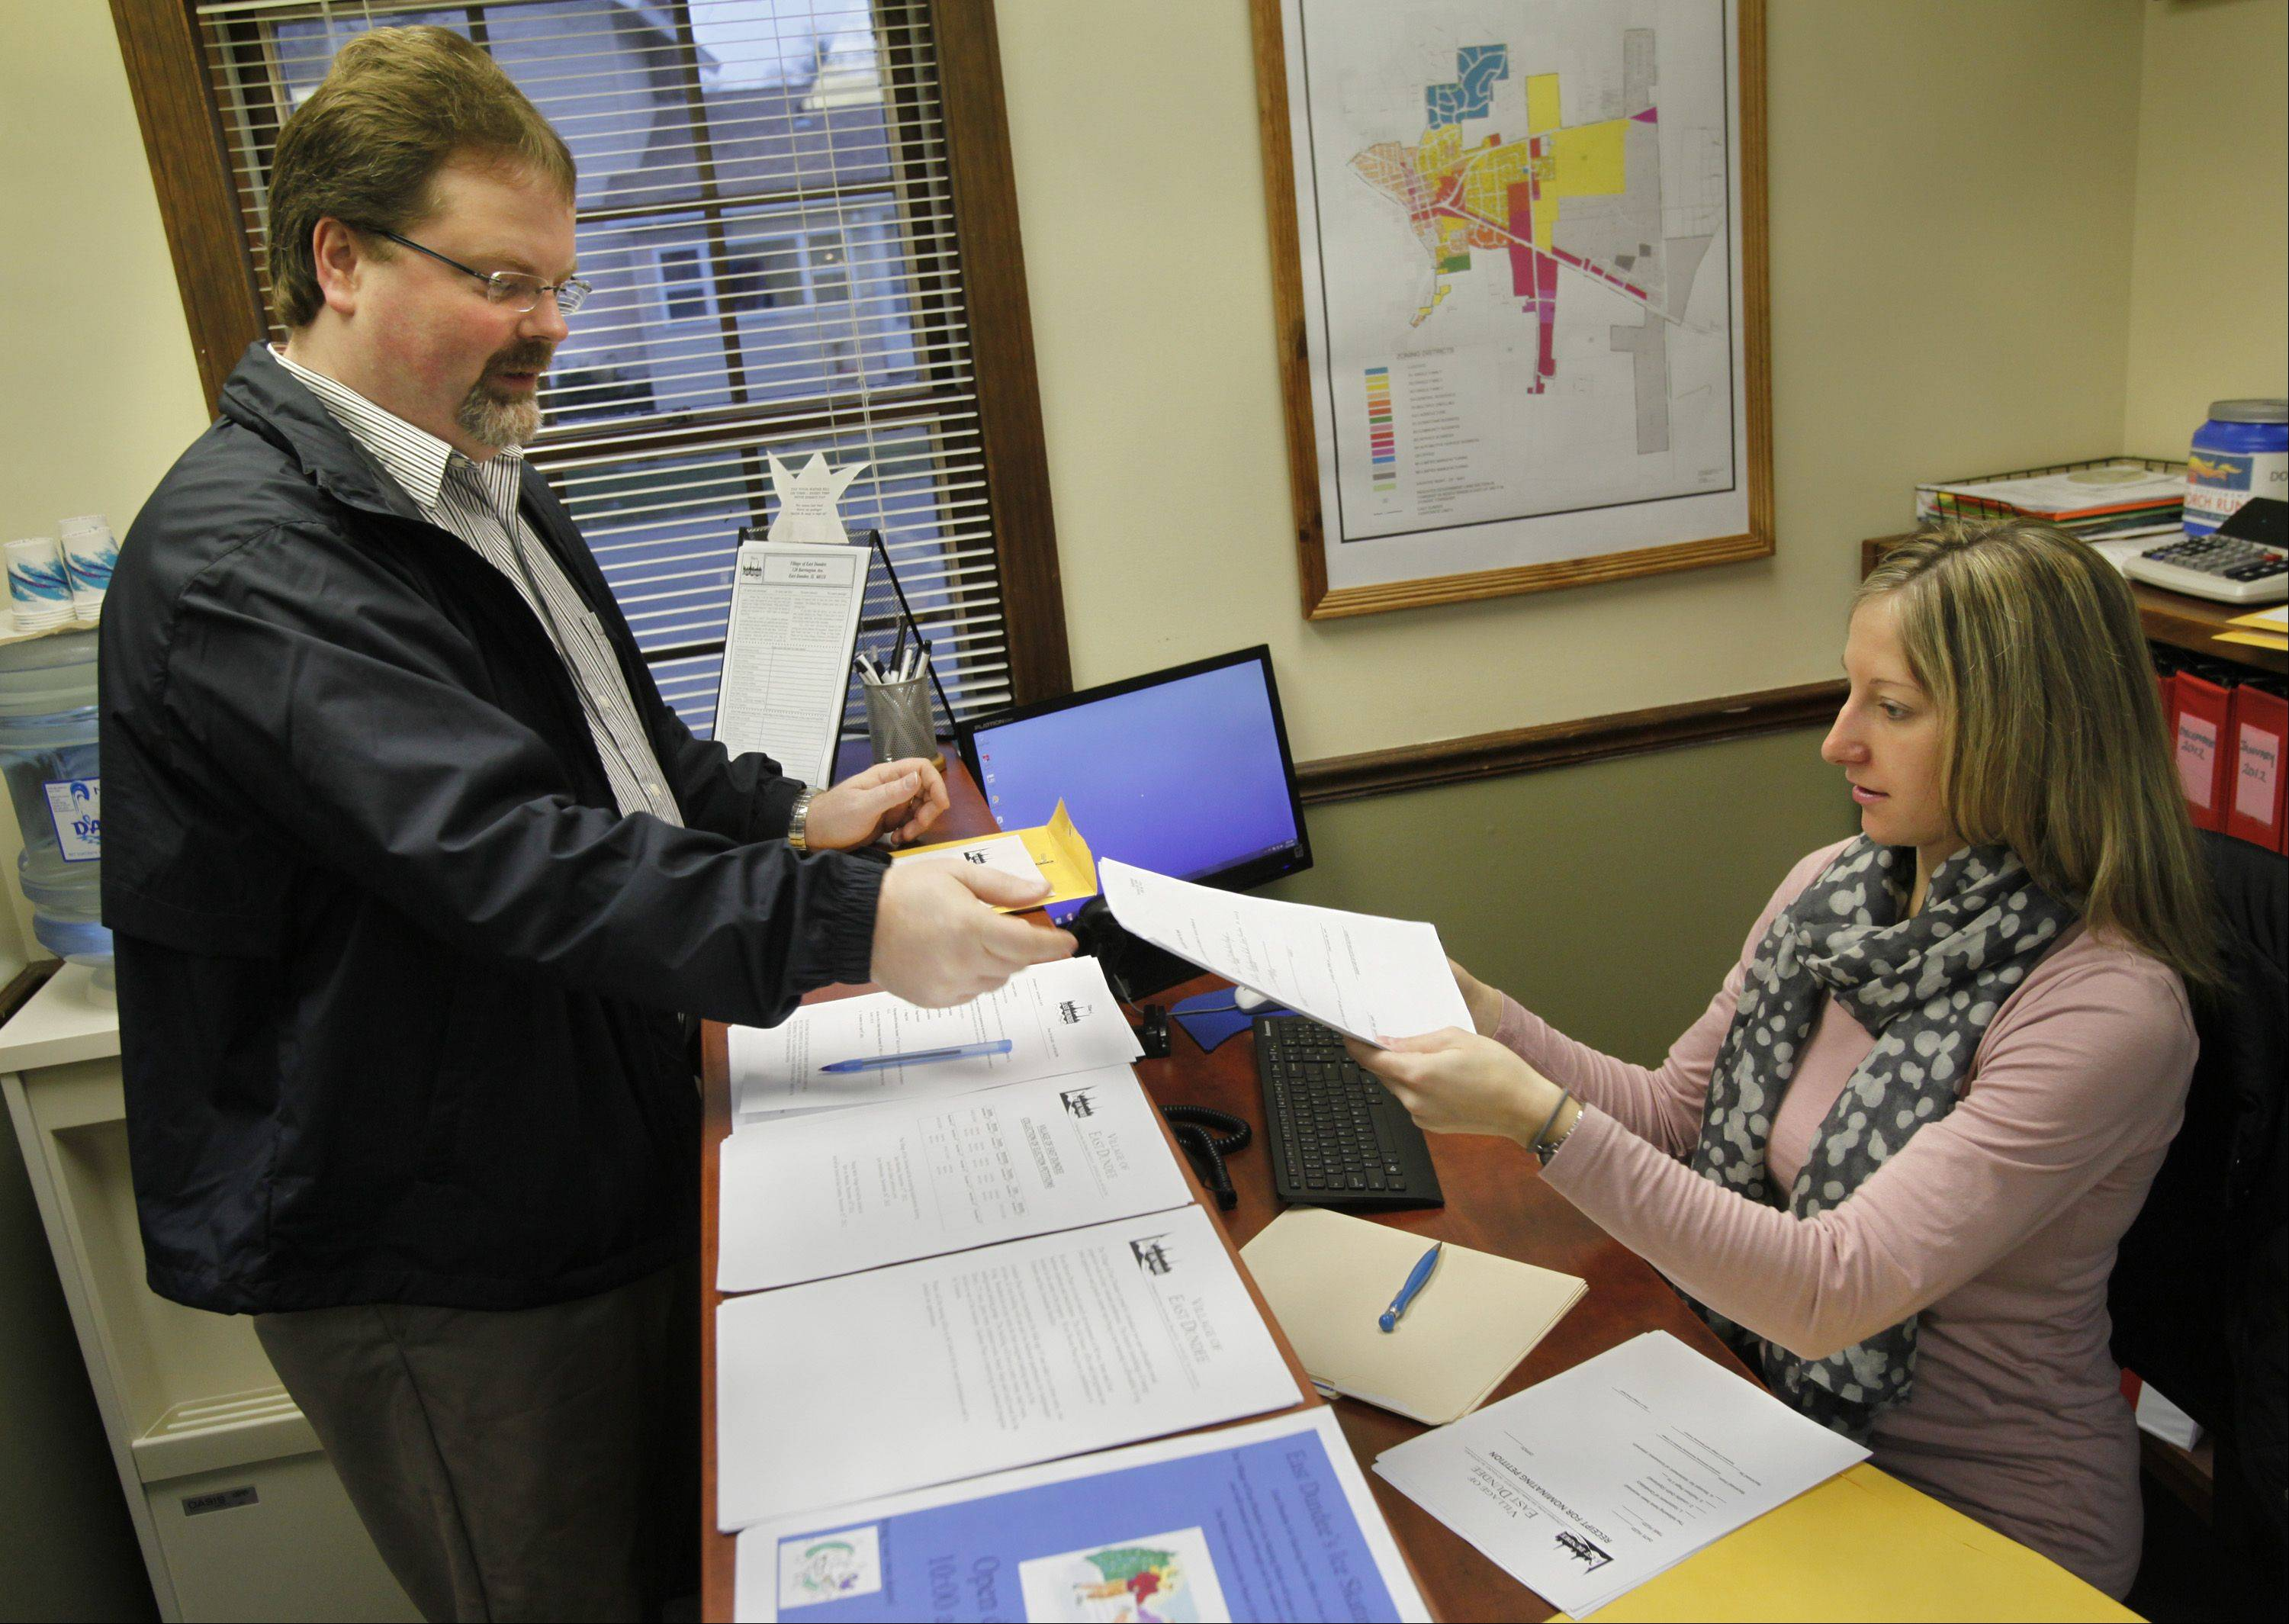 East Dundee Village President Jerald Bartels files his election paperwork with Deputy Village Administrator Heather Maieritsch, who is also the acting village clerk. Bartels also submitted materials for Trustee Paul VanOstenbridge, who was out of town.